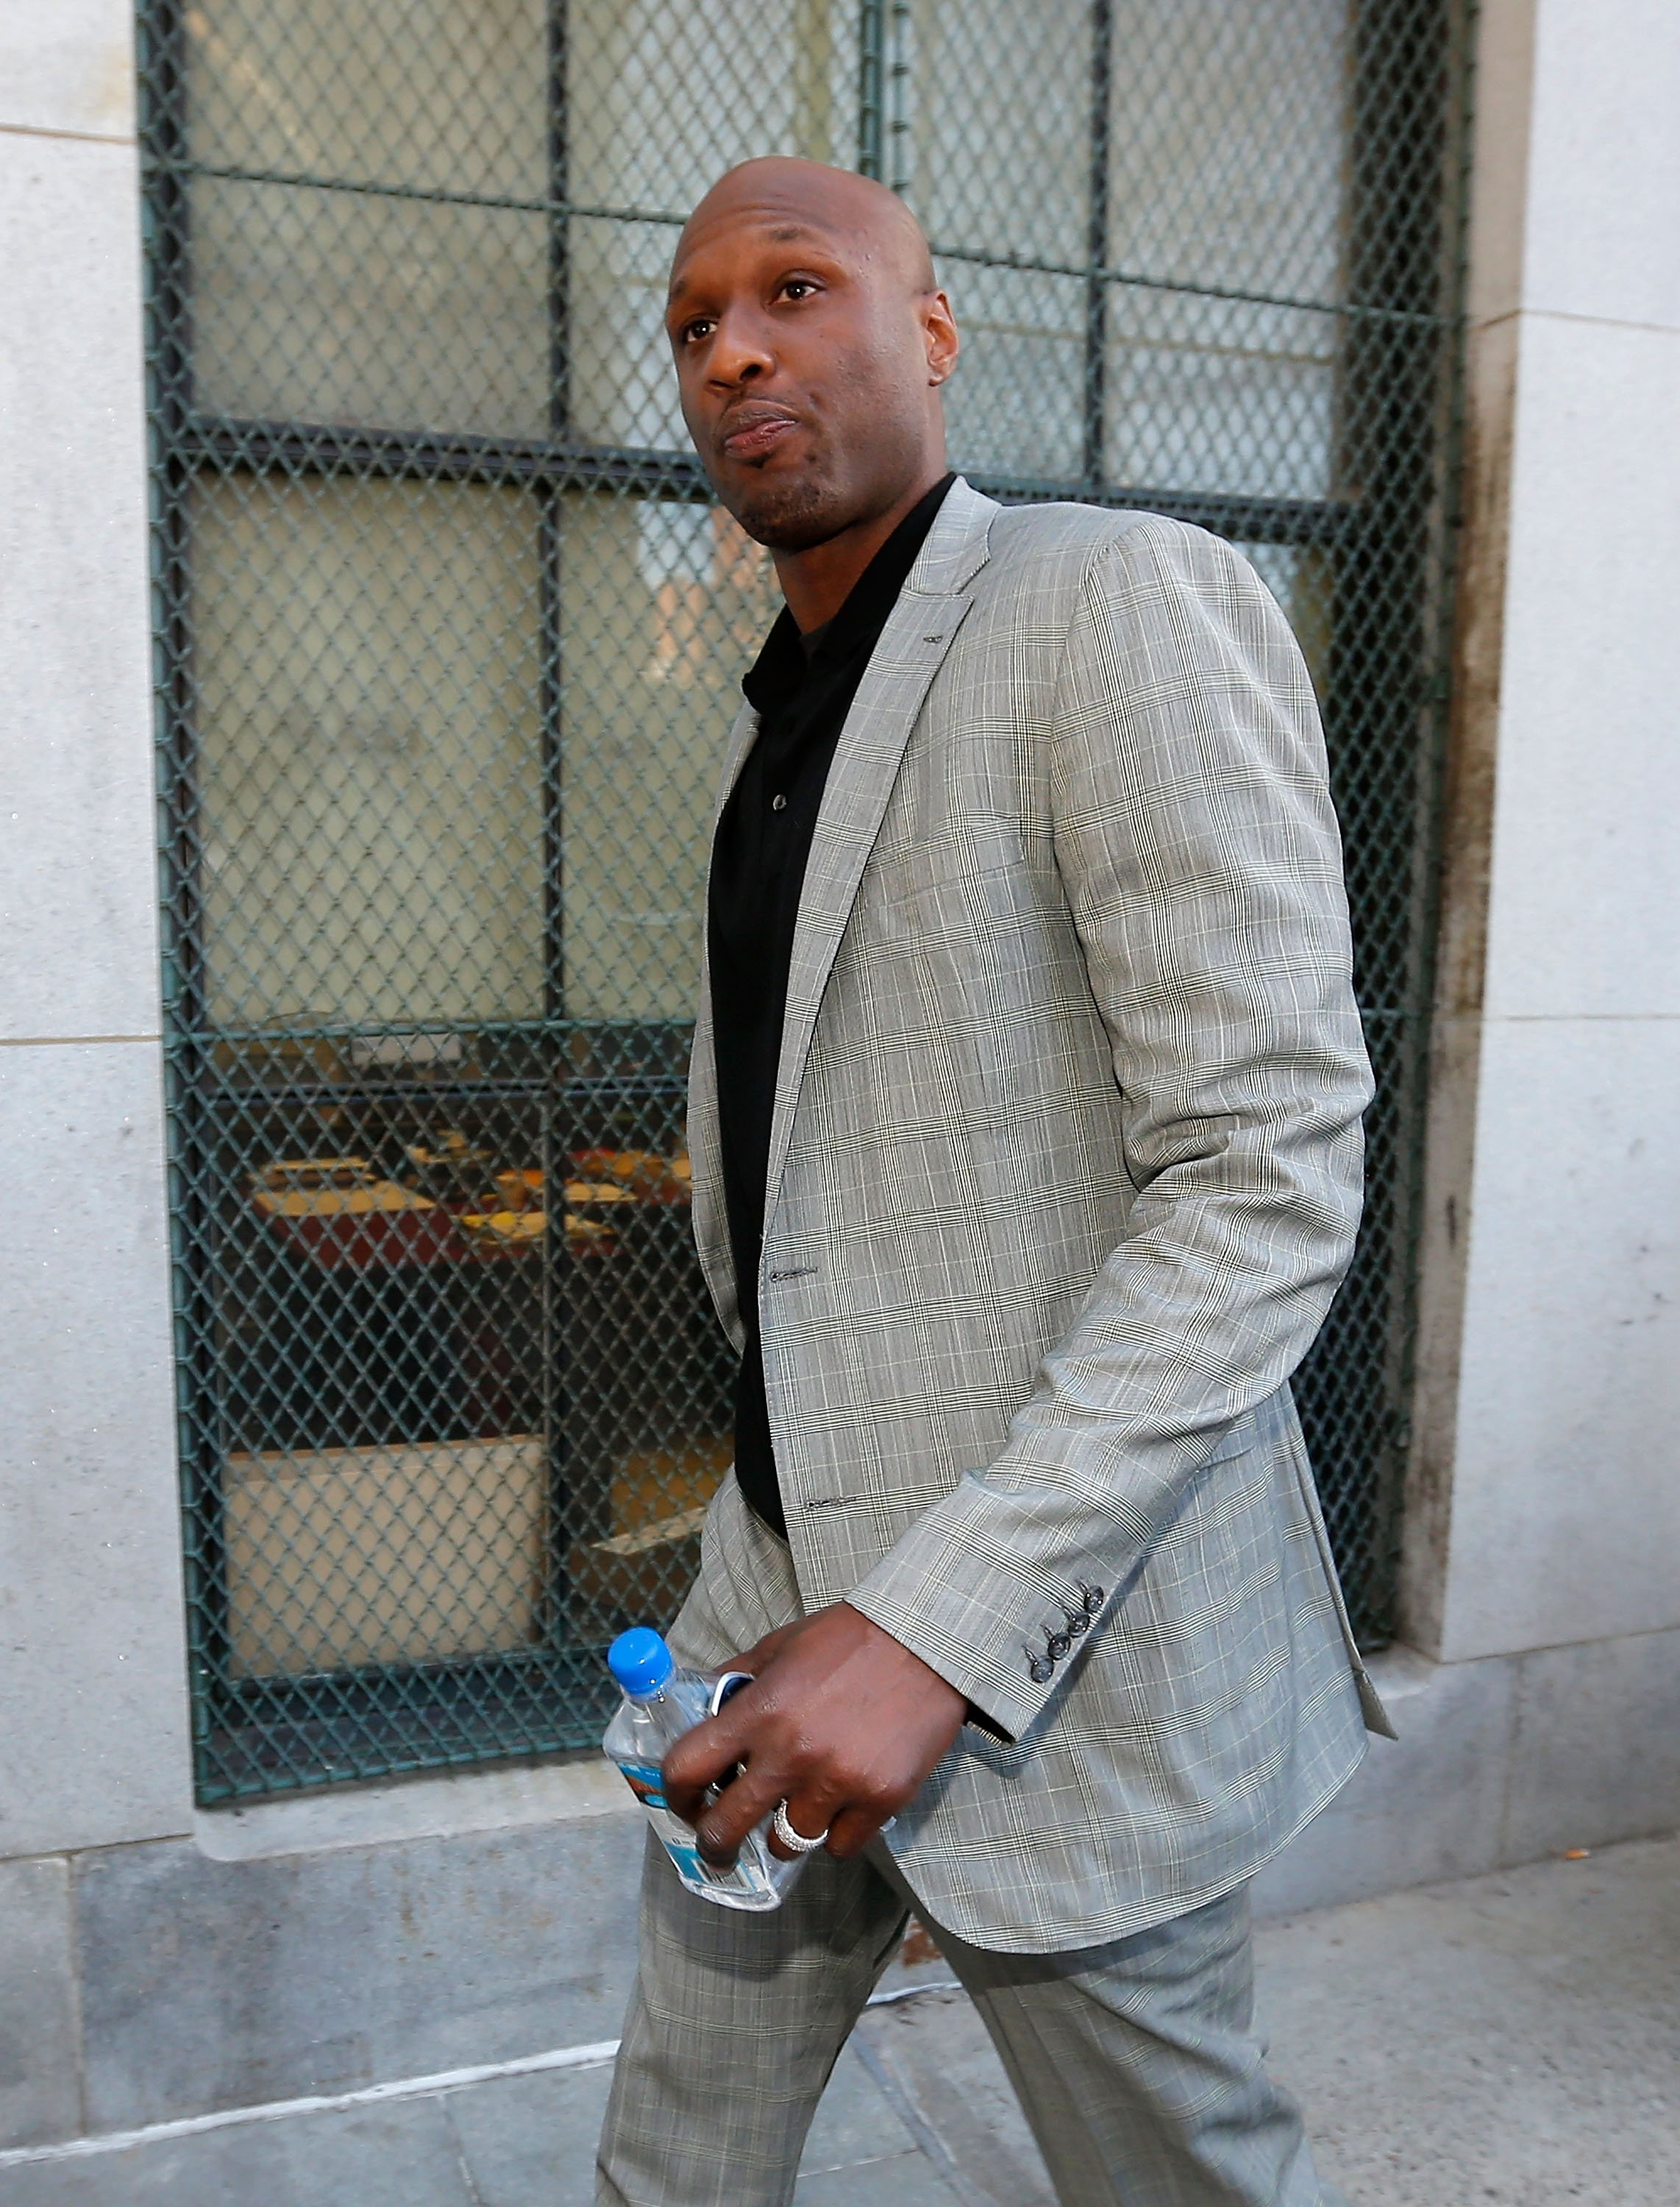 Lamar Odom at a custody hearing with ex-partner Liza Morales on March 5, 2013 in New York City | Photo: Getty Images